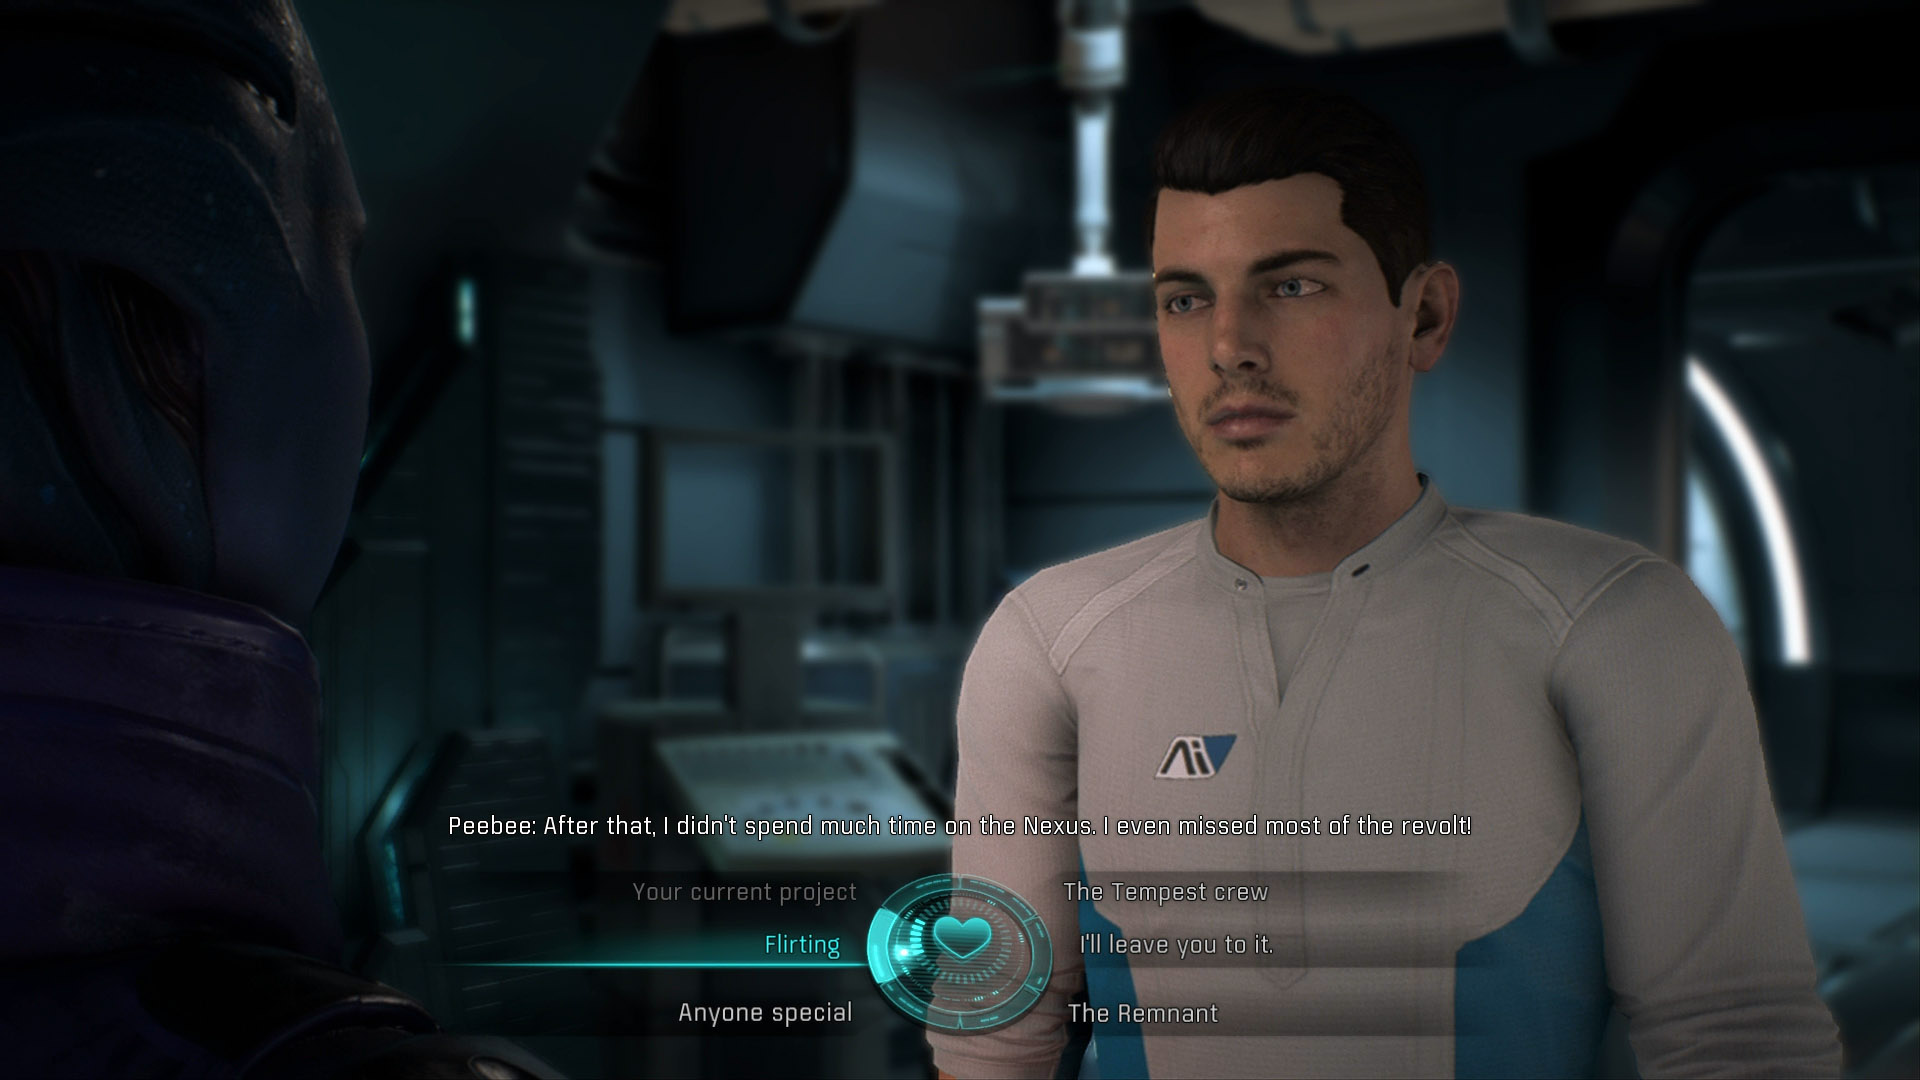 You must flirt with Peebee at least three times to romance her, when prompted, you can choose to enter a committed relationship with her too.